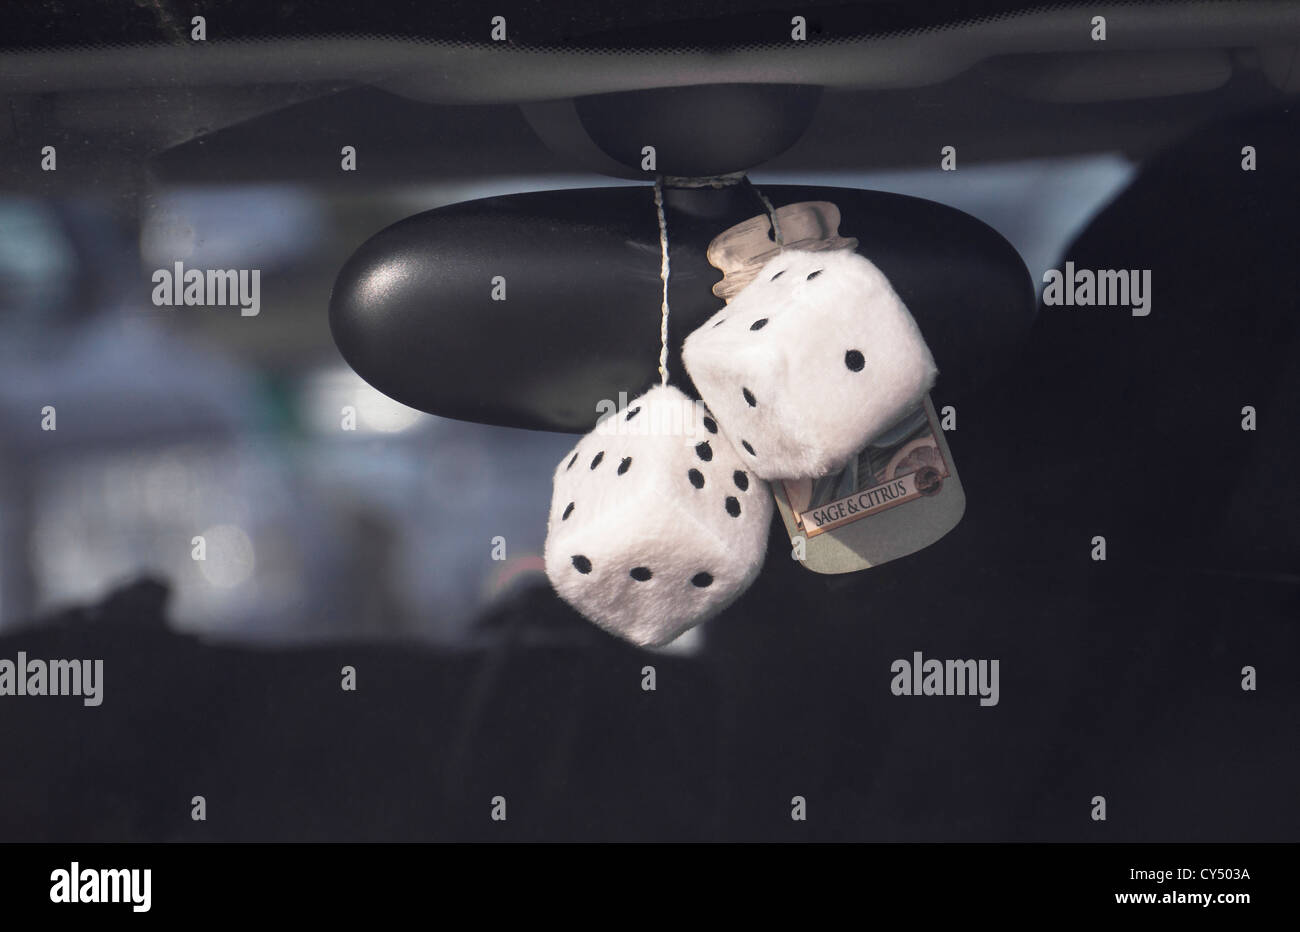 Fluffy dice and air freshener hanging from the rear view mirror of a car. - Stock Image